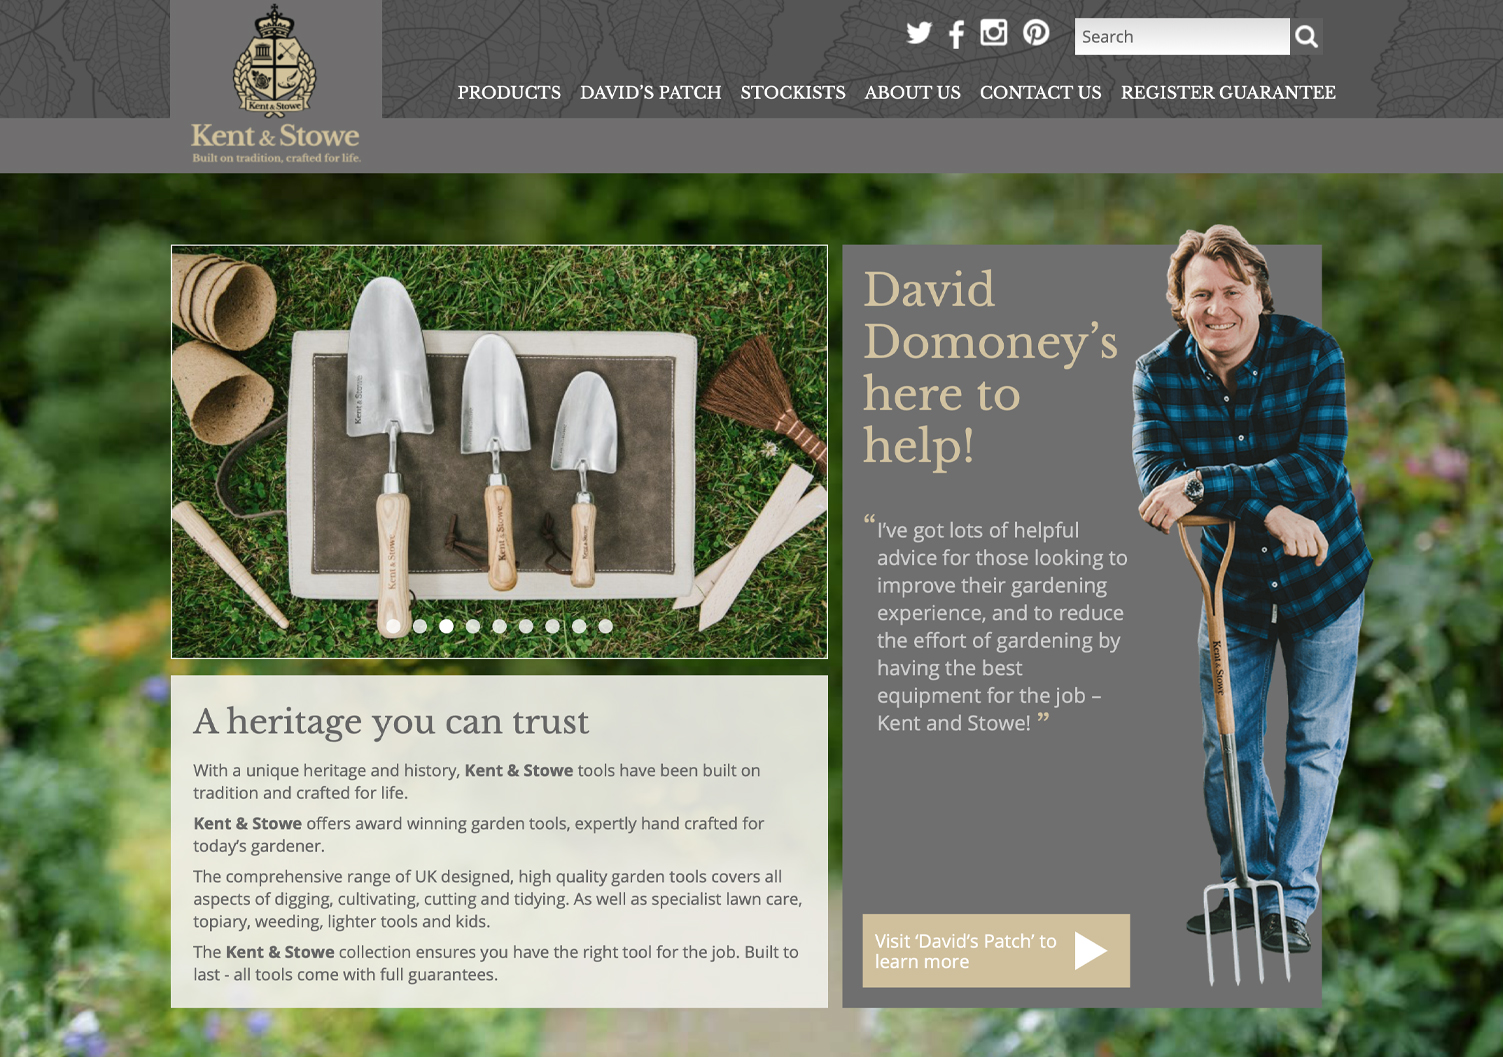 Kent & Stowe website